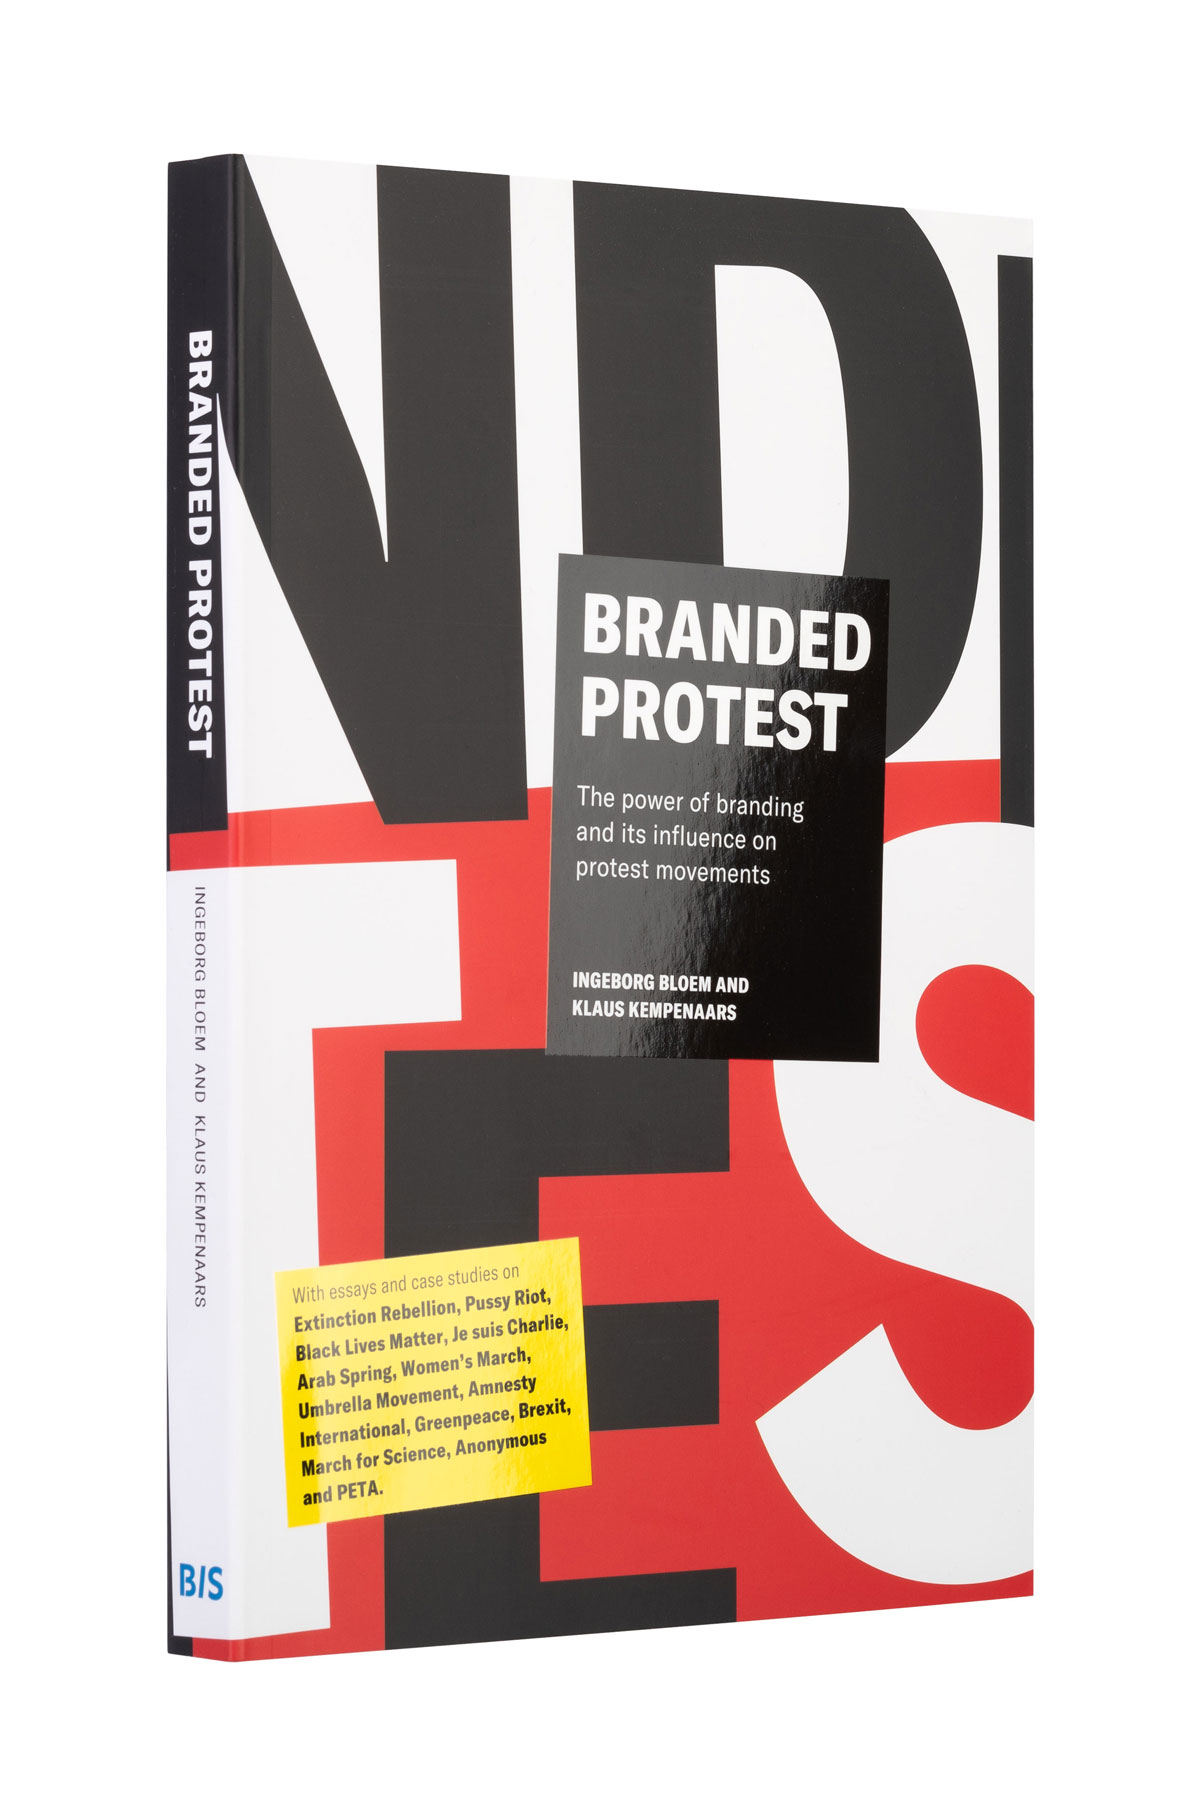 slanted-book-brandedprotest_10